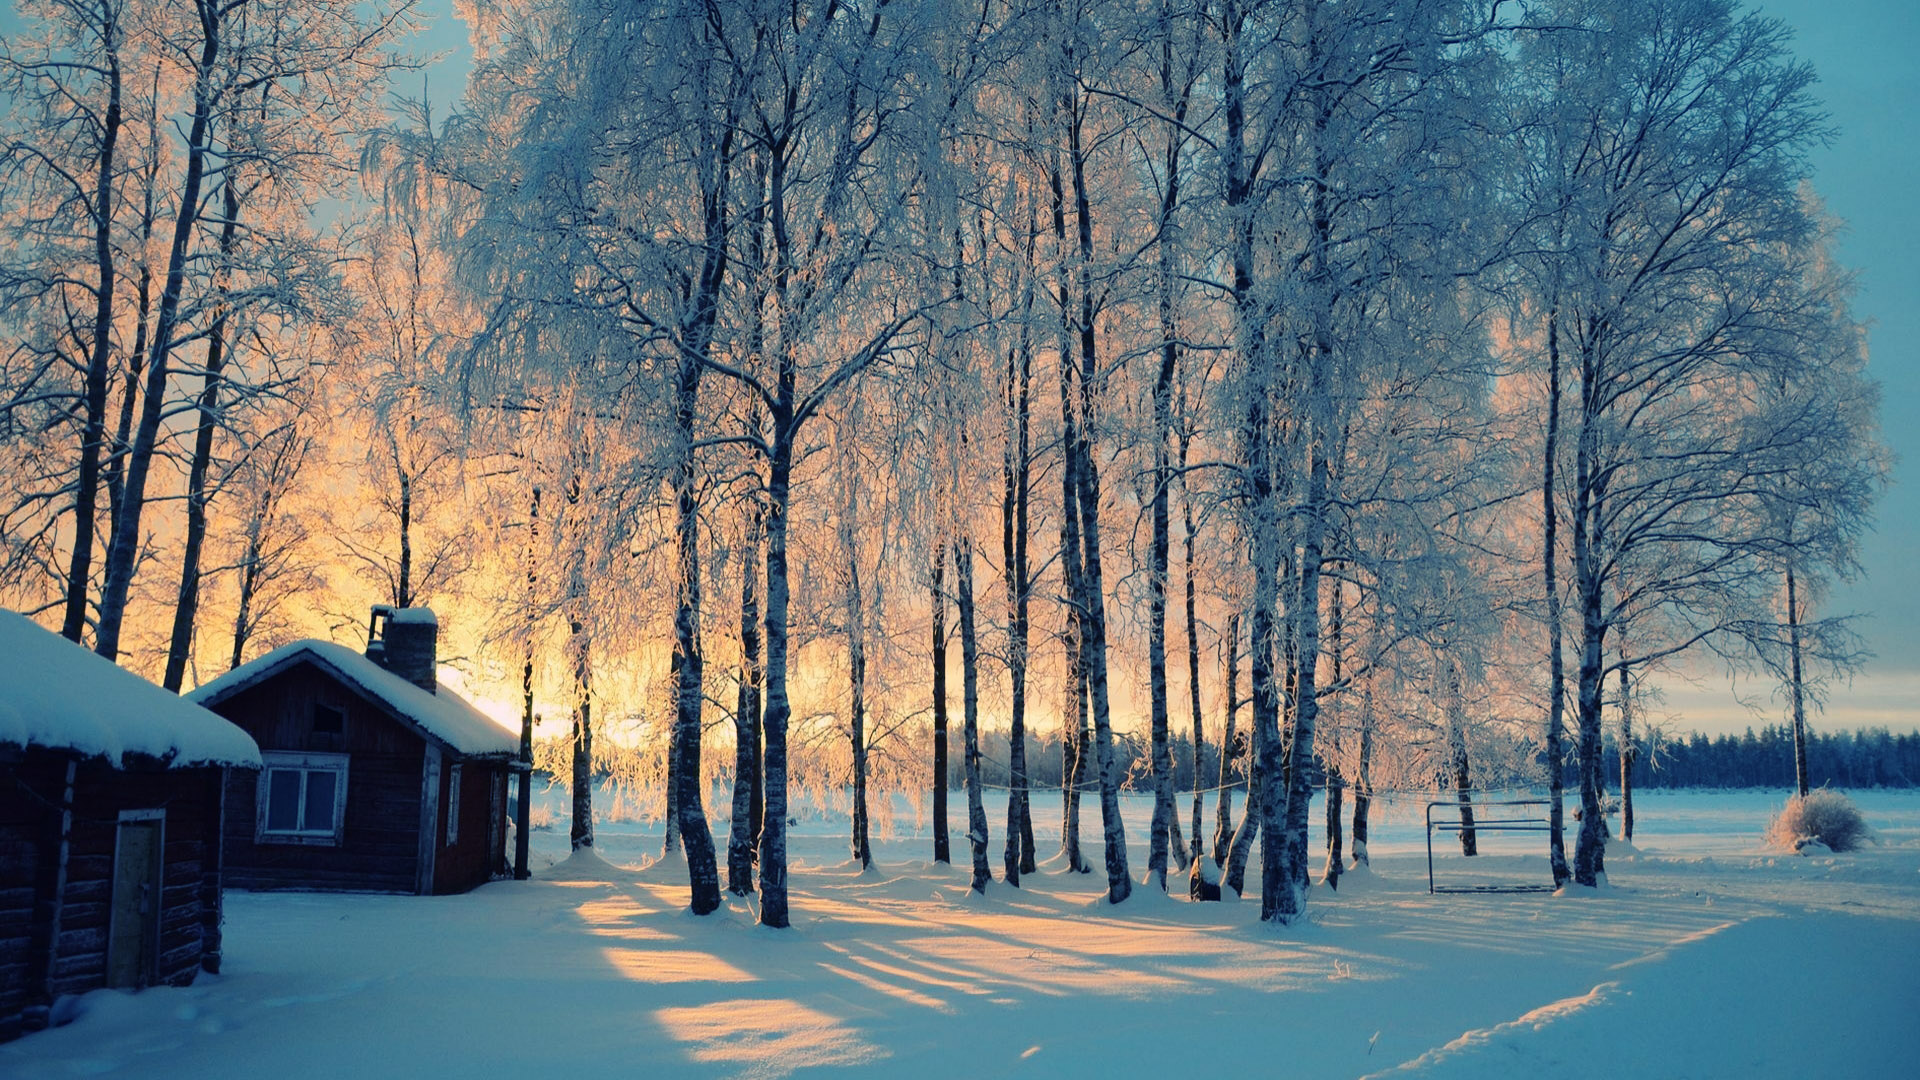 Winter Backgrounds download free